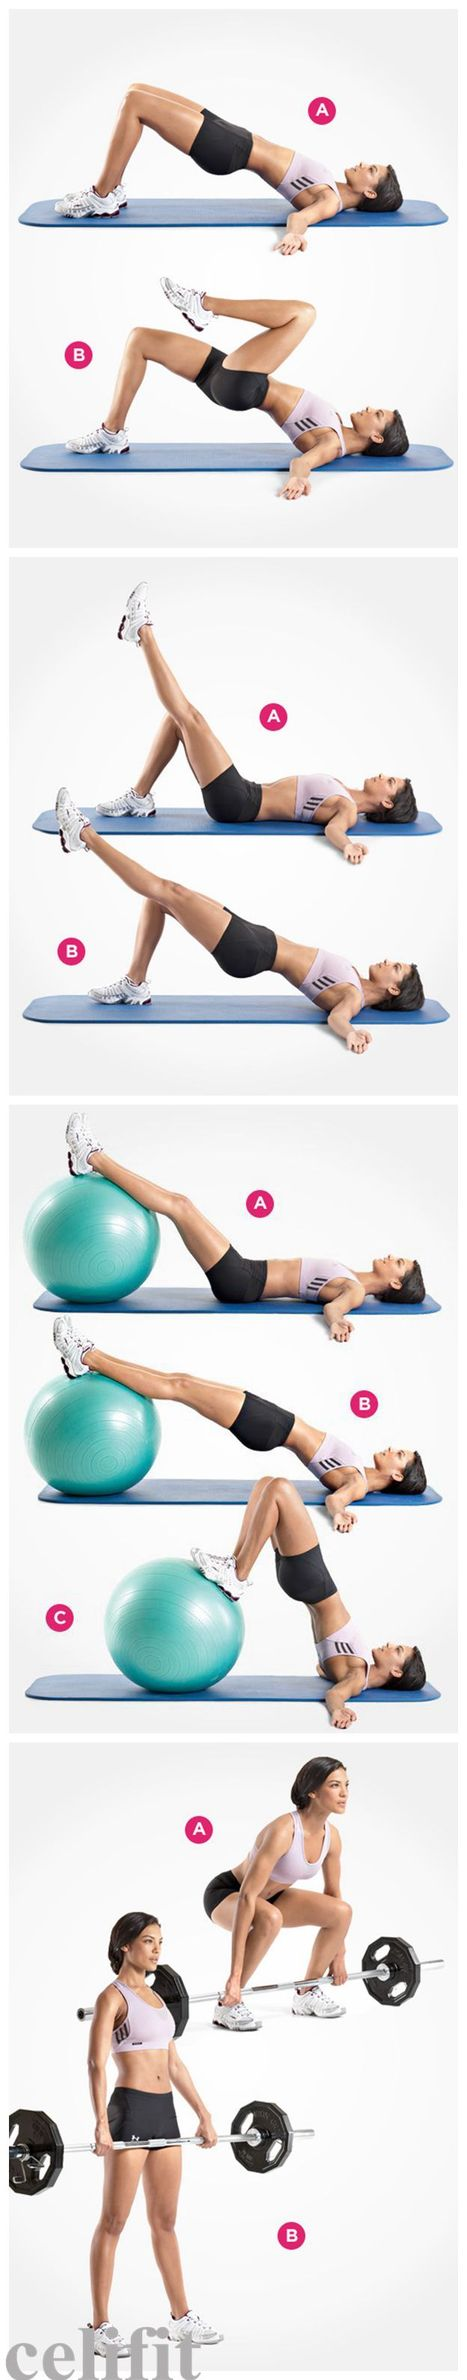 4 Butt Exercises For You To Have A Super-Toned Tush / Healthy Weight Loss Tips   Healthy weight loss   Scoop.it